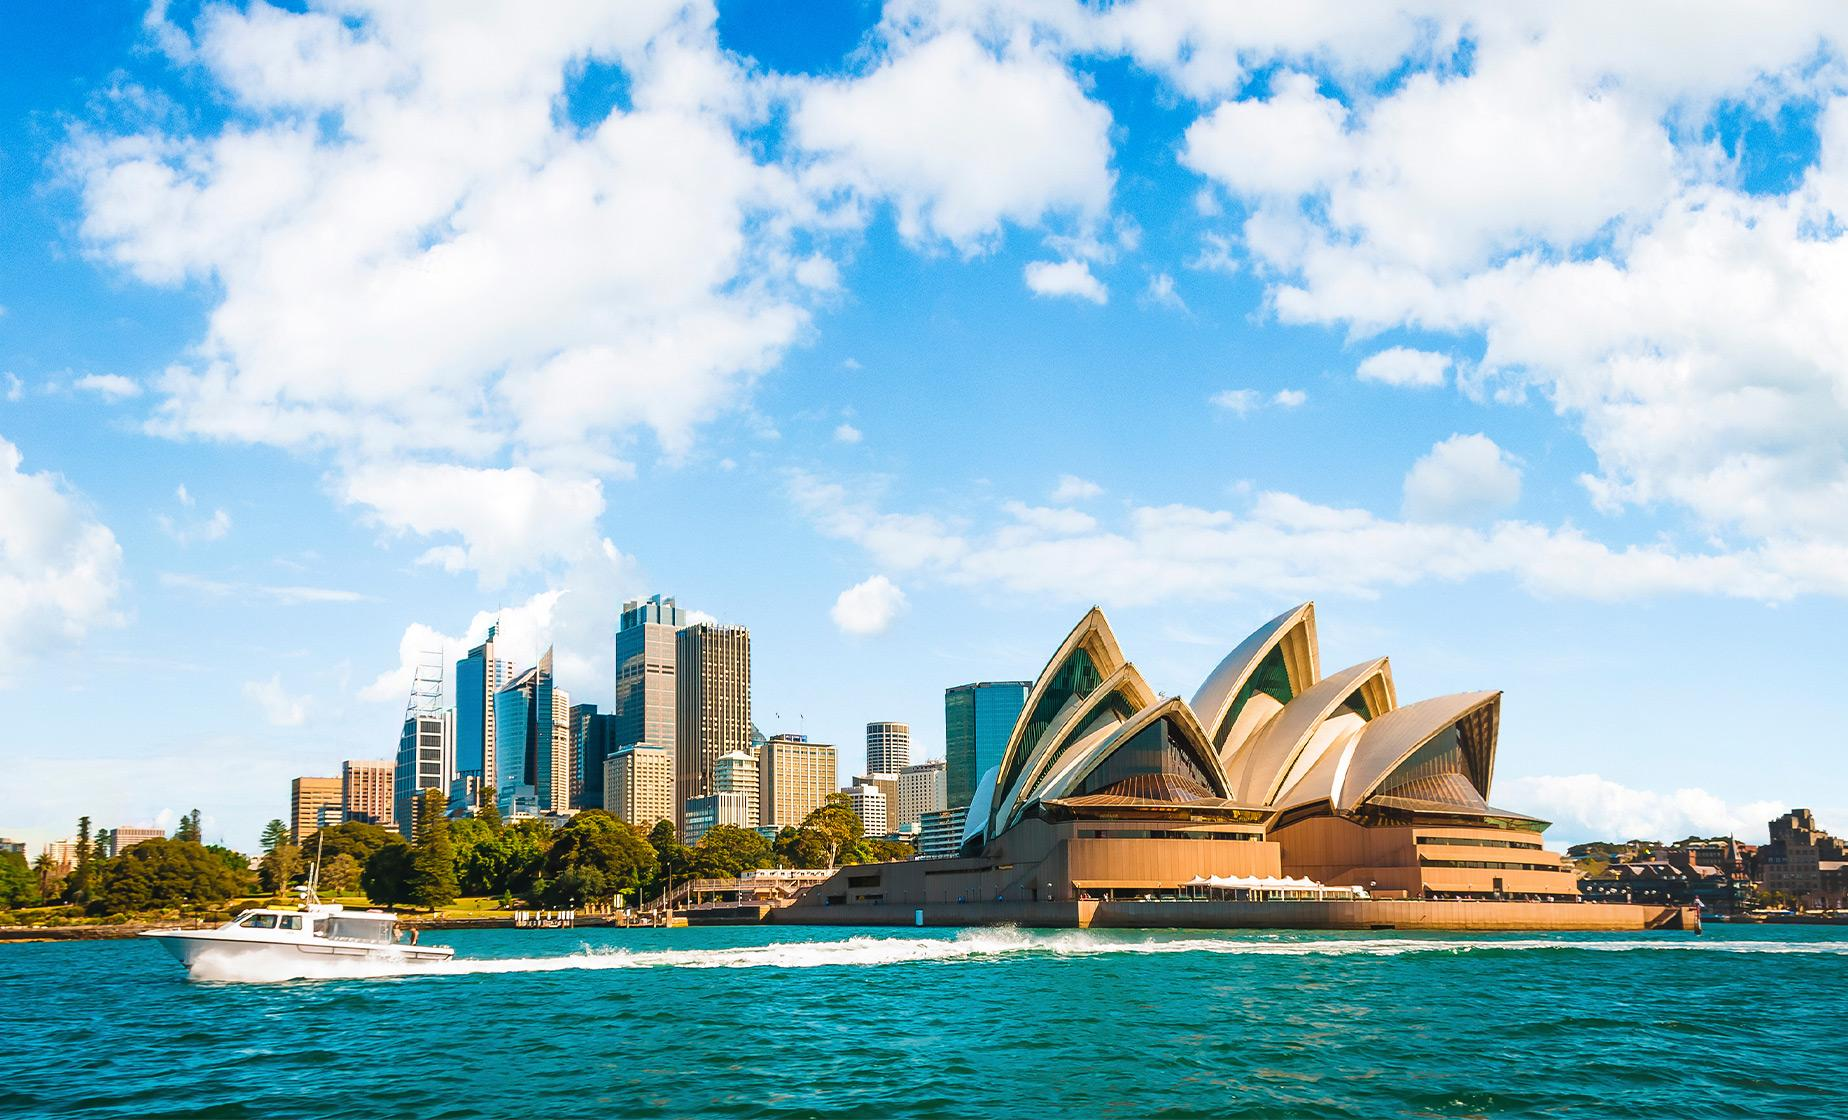 Sydney Highlights & Lunch Cruise from Hotel